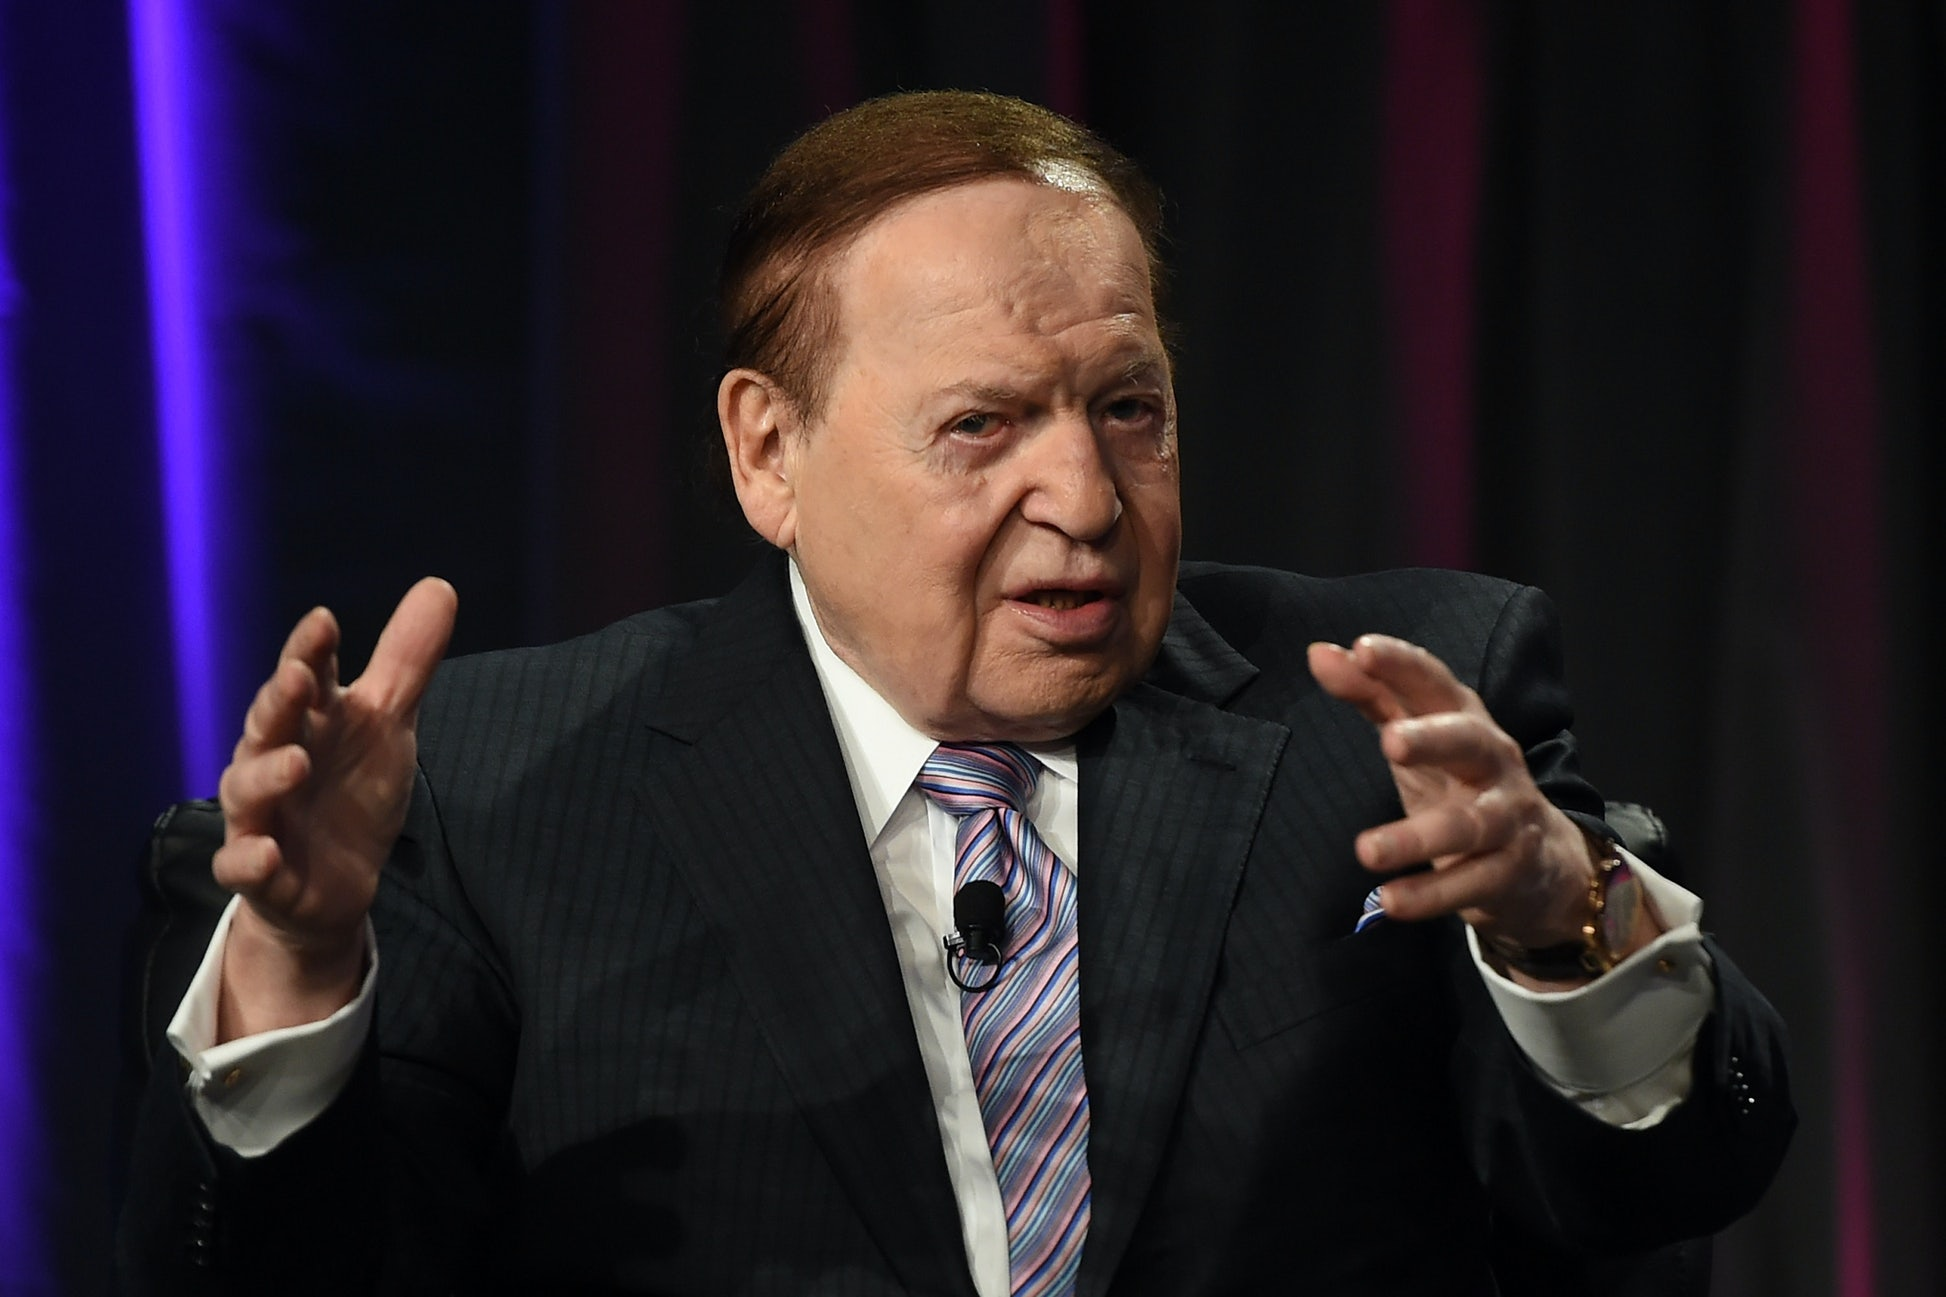 Sheldon Adelson died at age 87